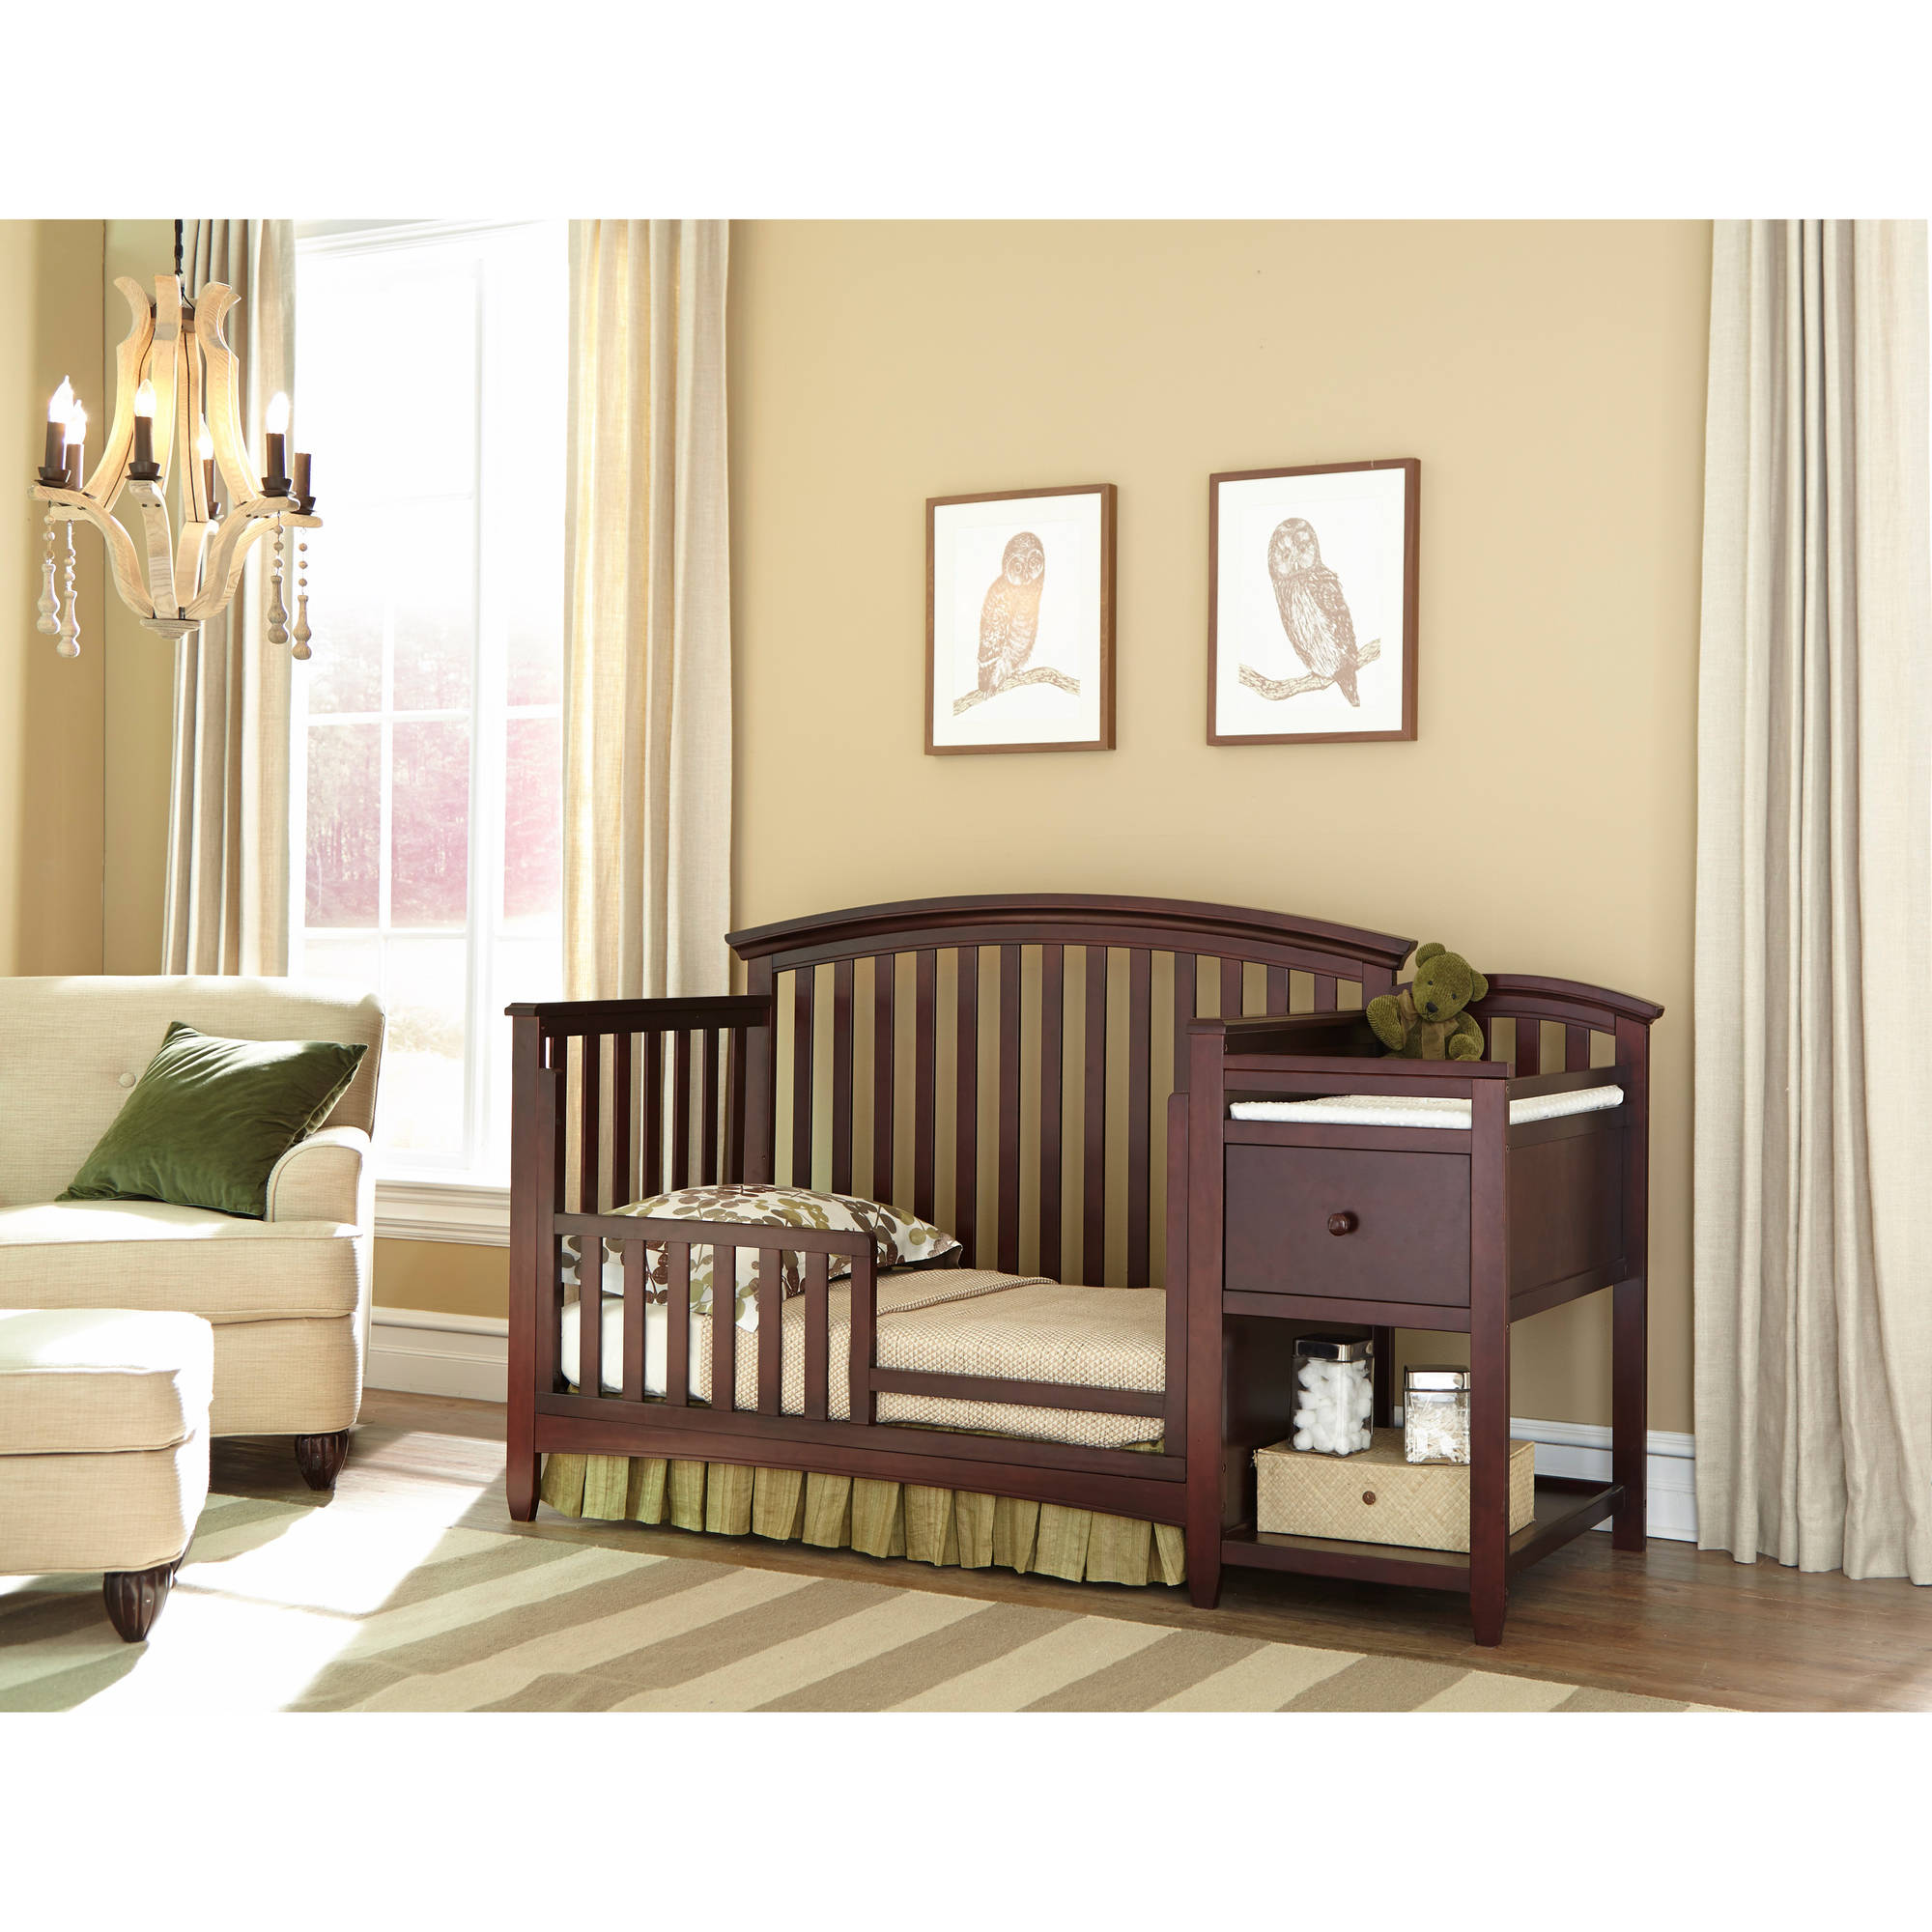 Imagio Baby Montville 4 In 1 Fixed Side Crib And Changing Table Combo With  Pad, Chocolate Mist   Walmart.com